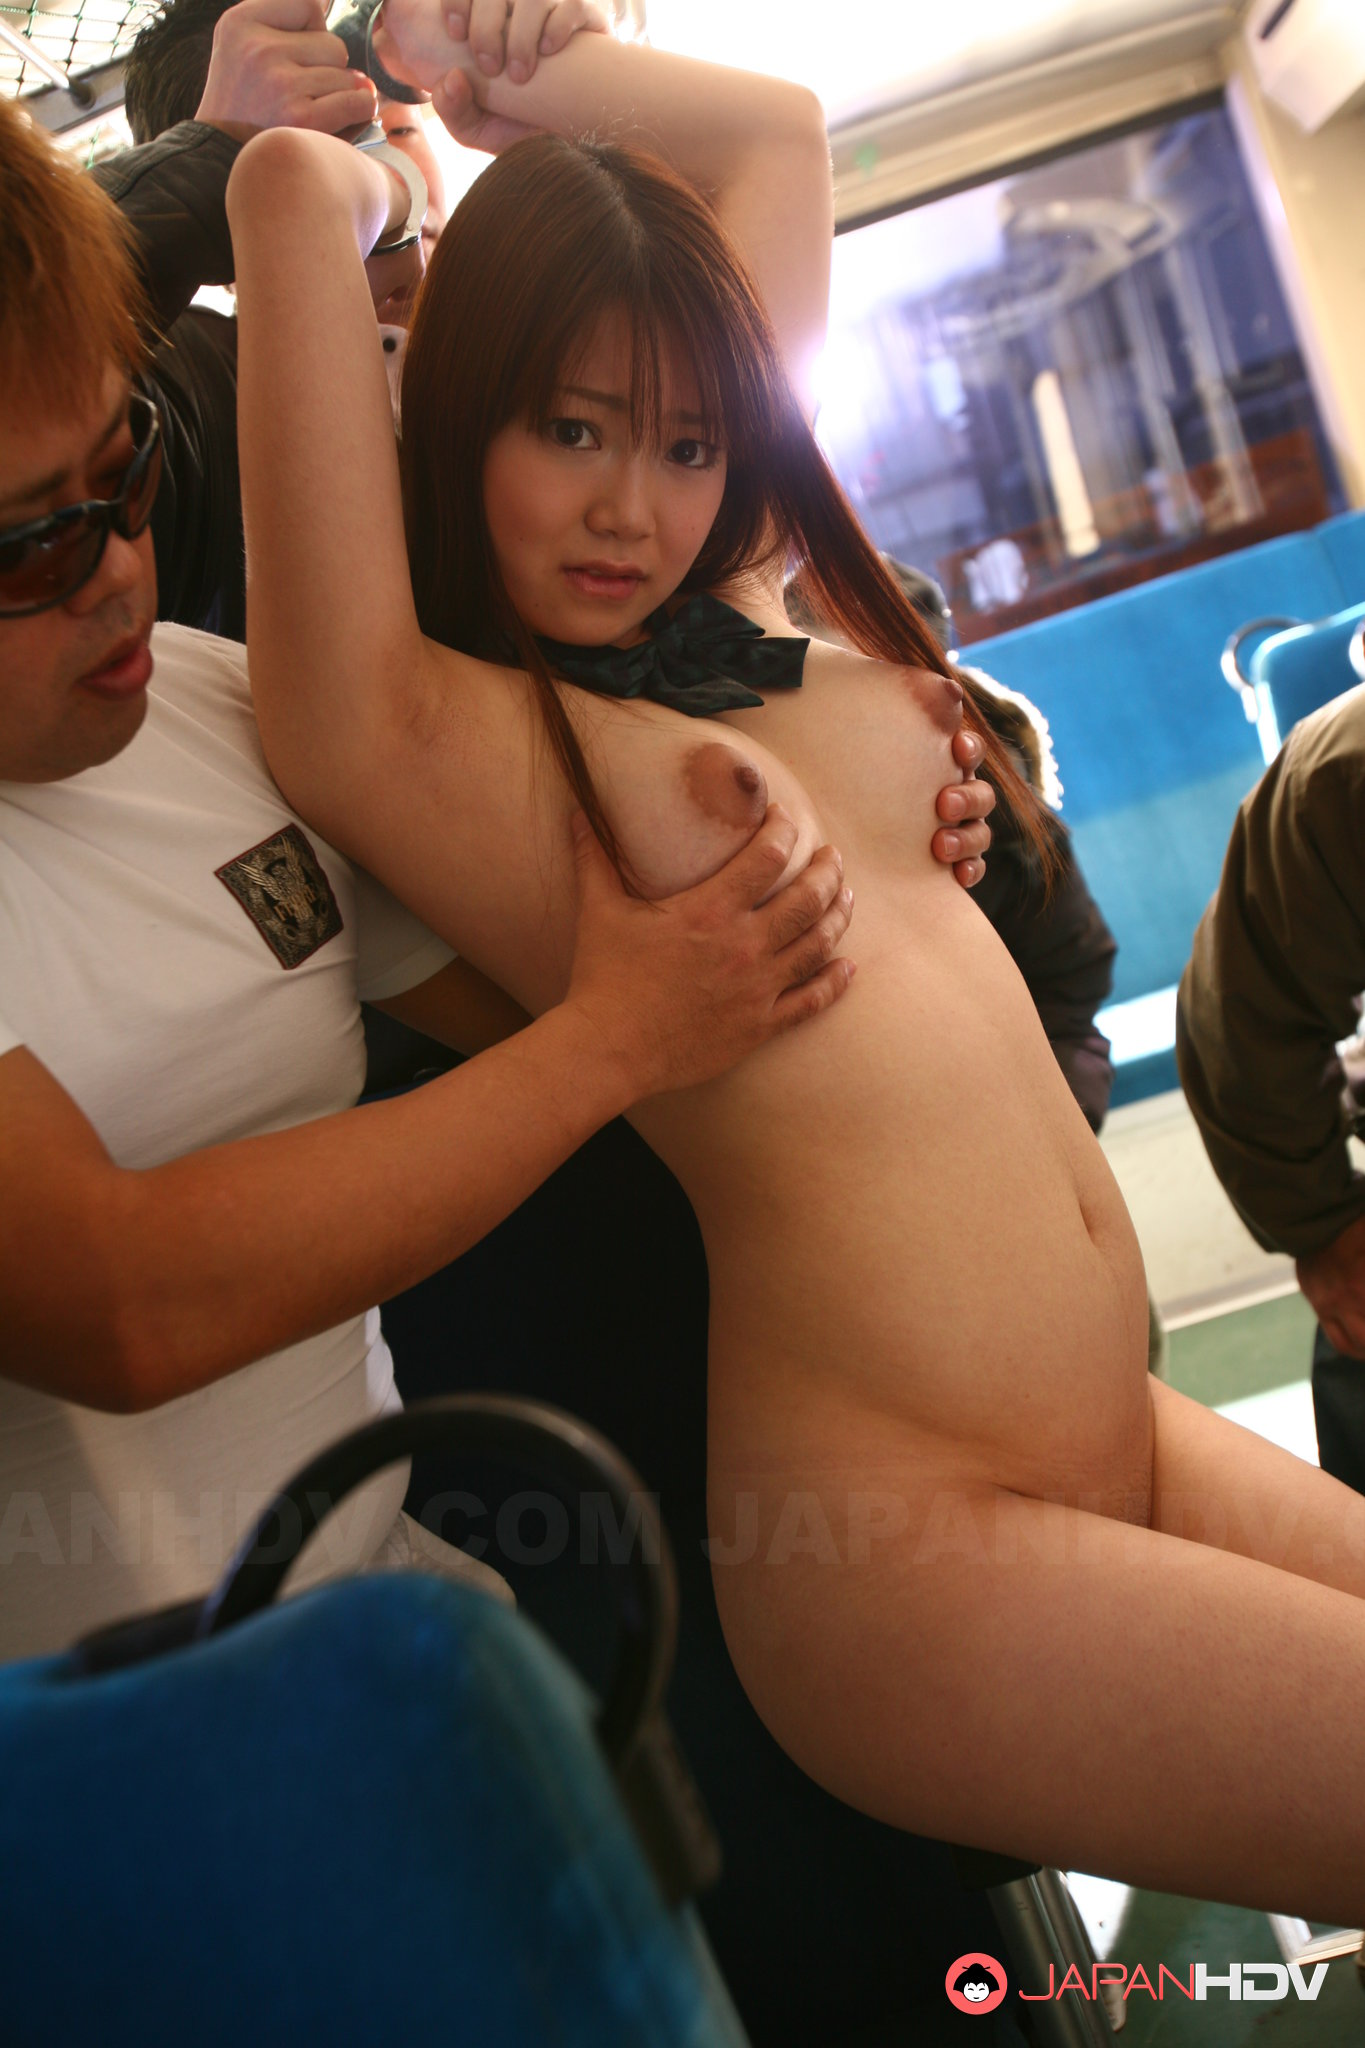 Asian girl gets groped